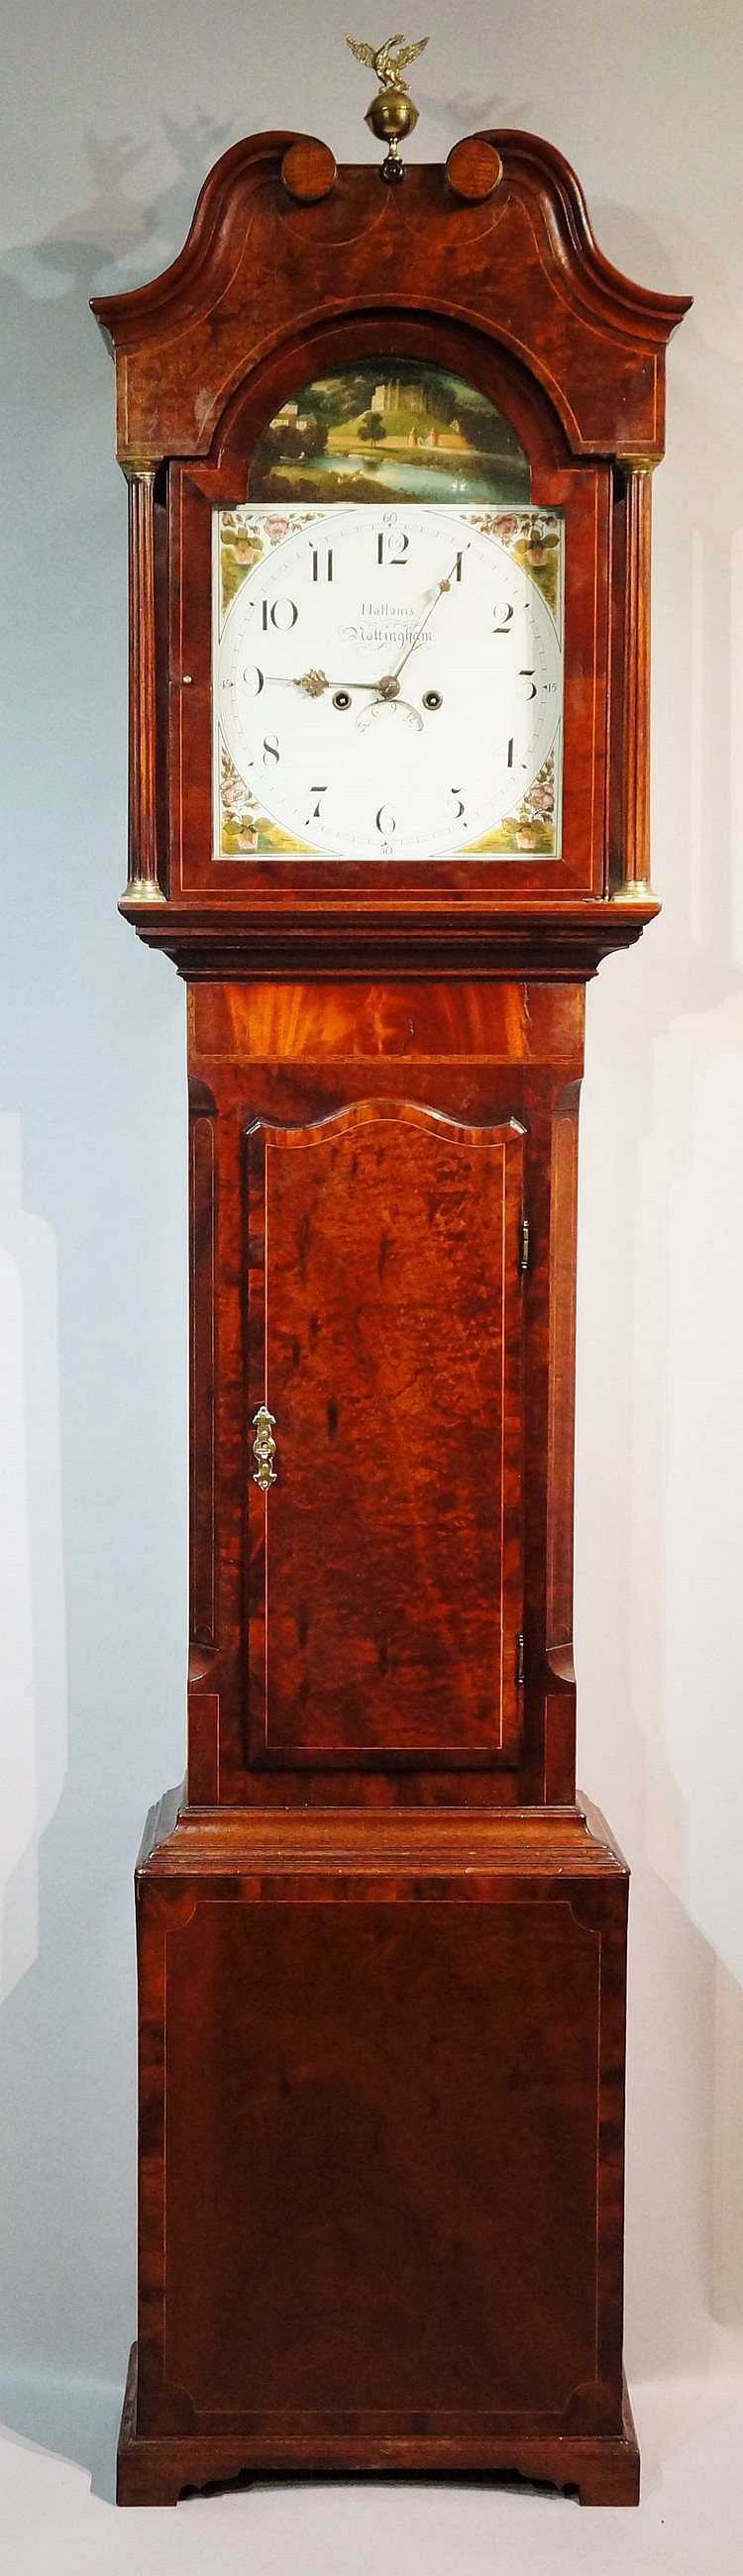 A George III mahogany longcase clock, the hood with swan neck pediment cent